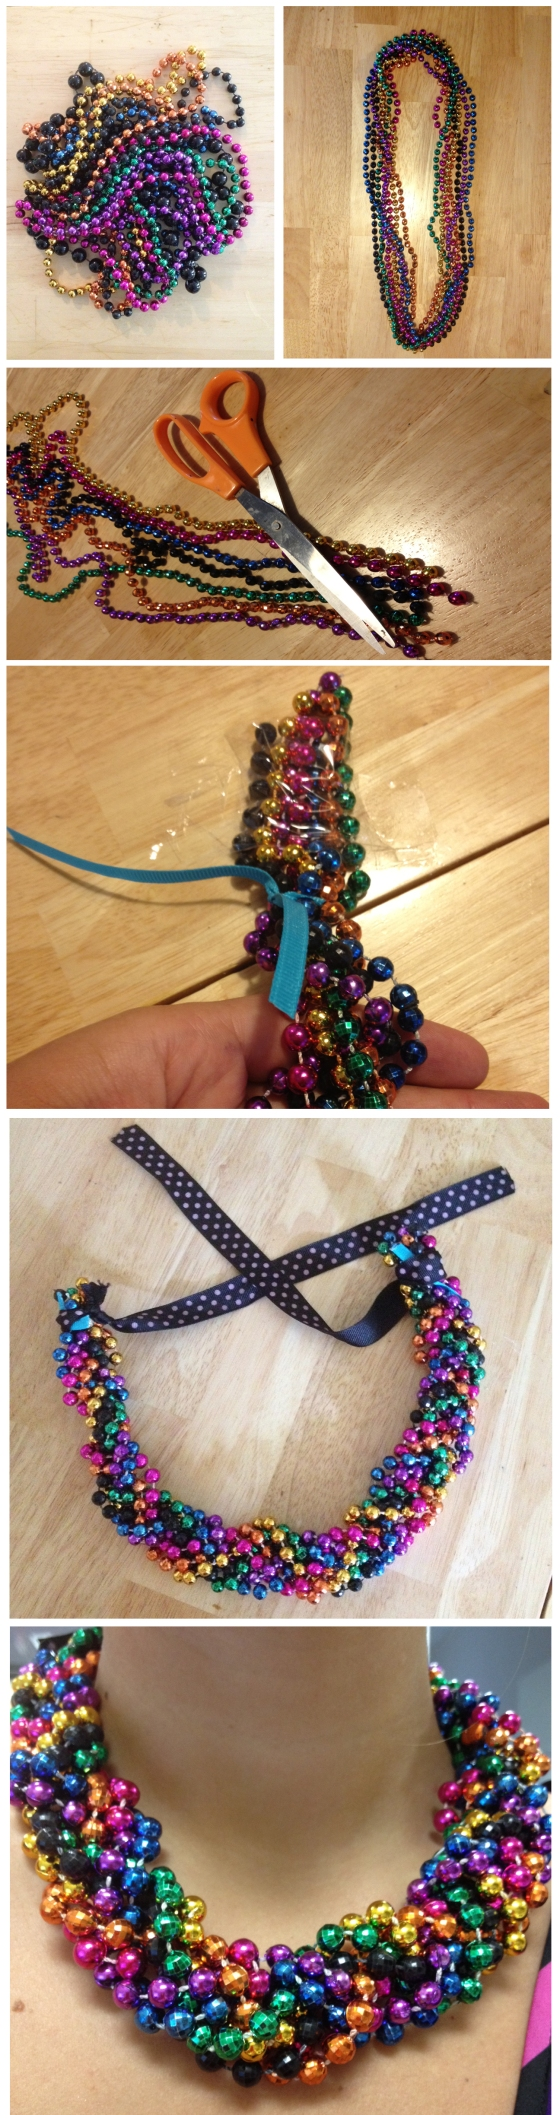 DIY Mardi Gras Bead Braided Necklace